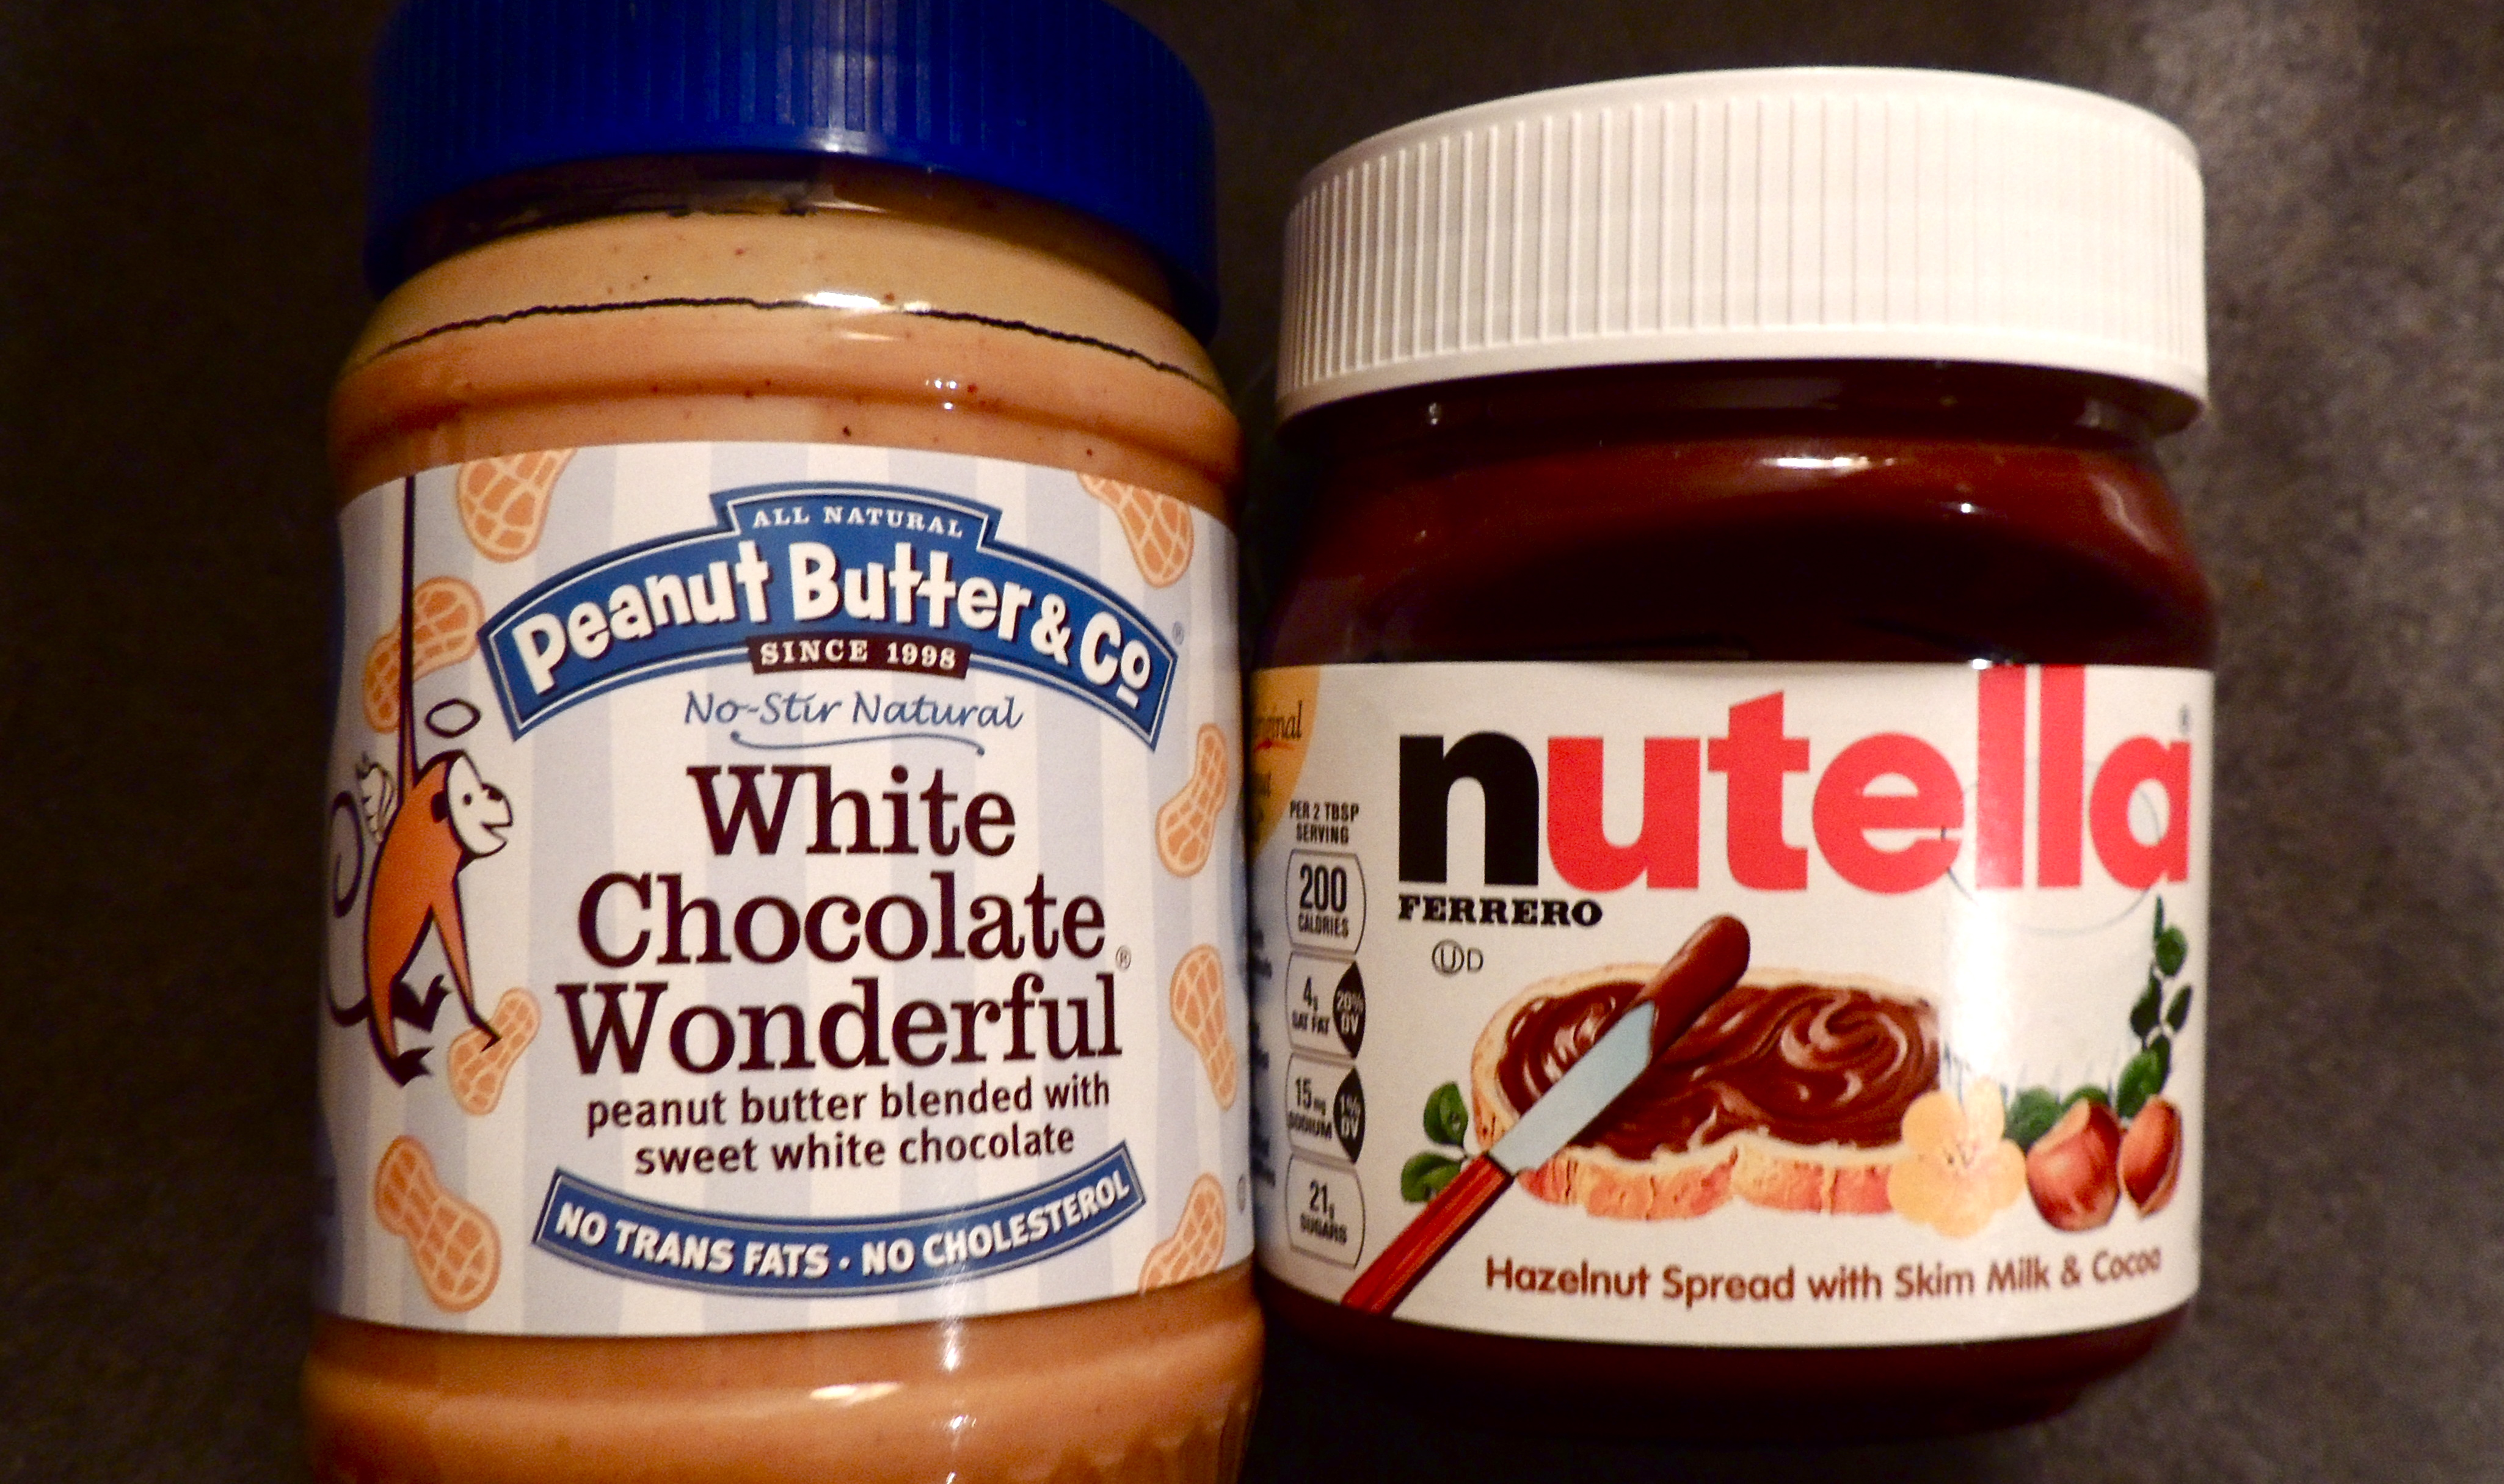 White Chocolate And Peanut Butter Recipes